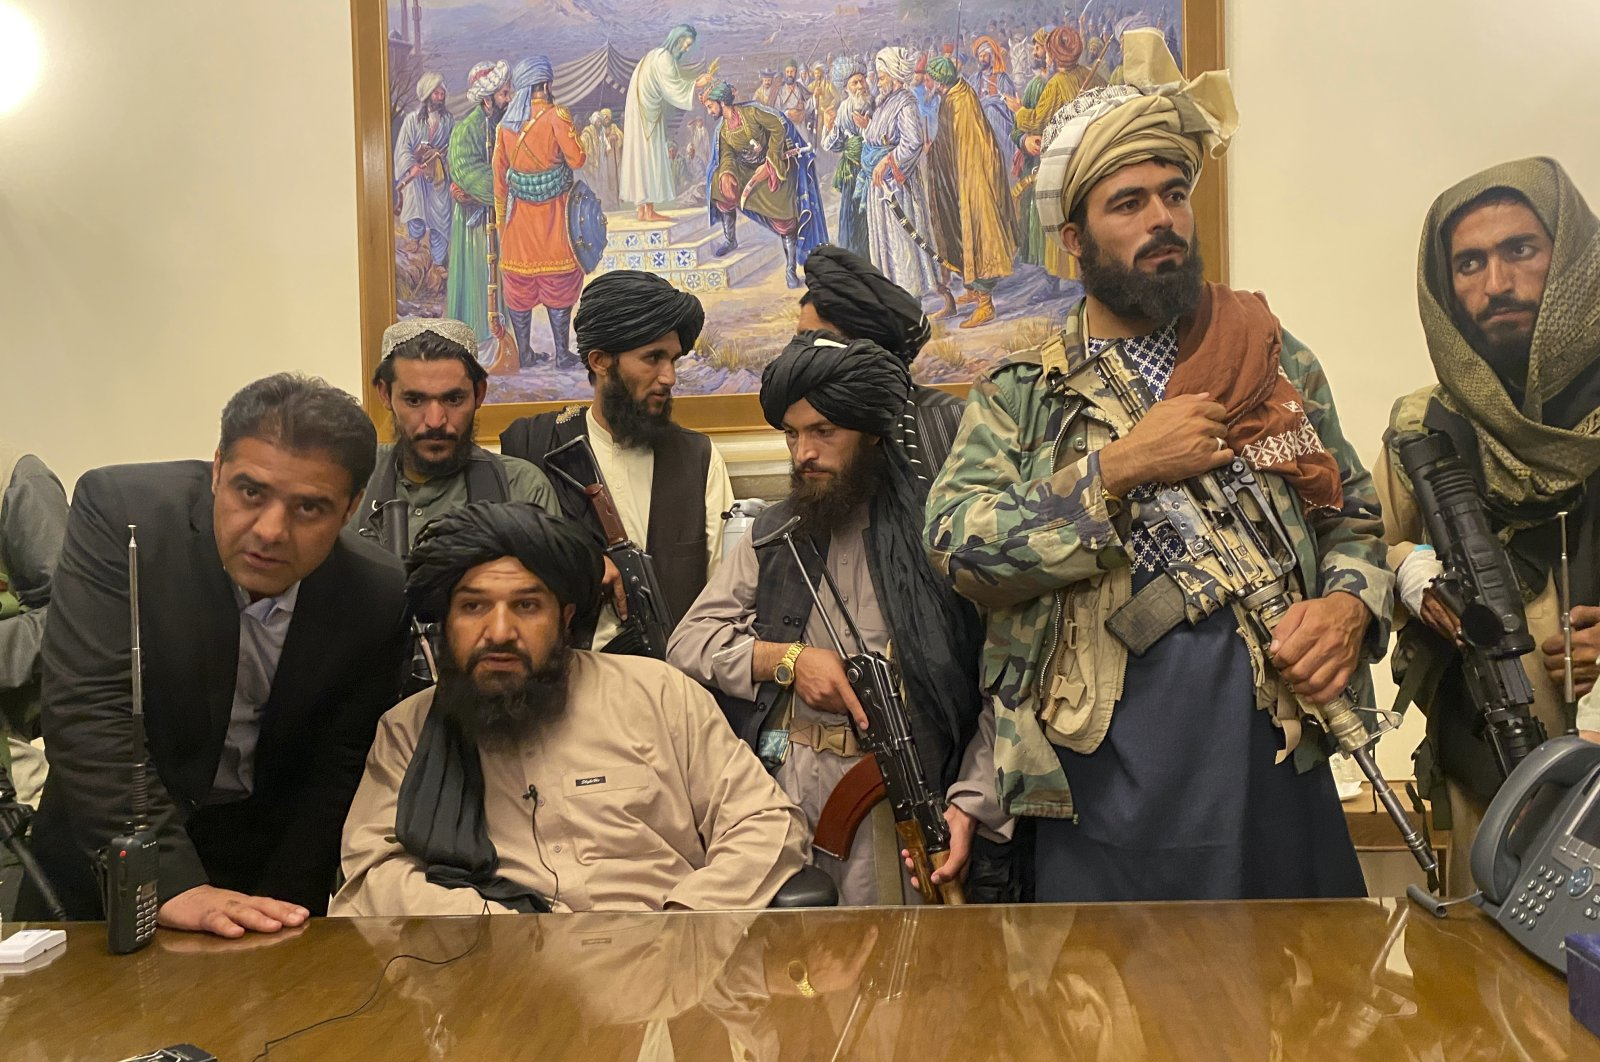 Taliban fighters take control of the Afghan presidential palace after Afghan President Ashraf Ghani fled the country, in Kabul, Afghanistan, Aug. 15, 2021. (AP Photo)